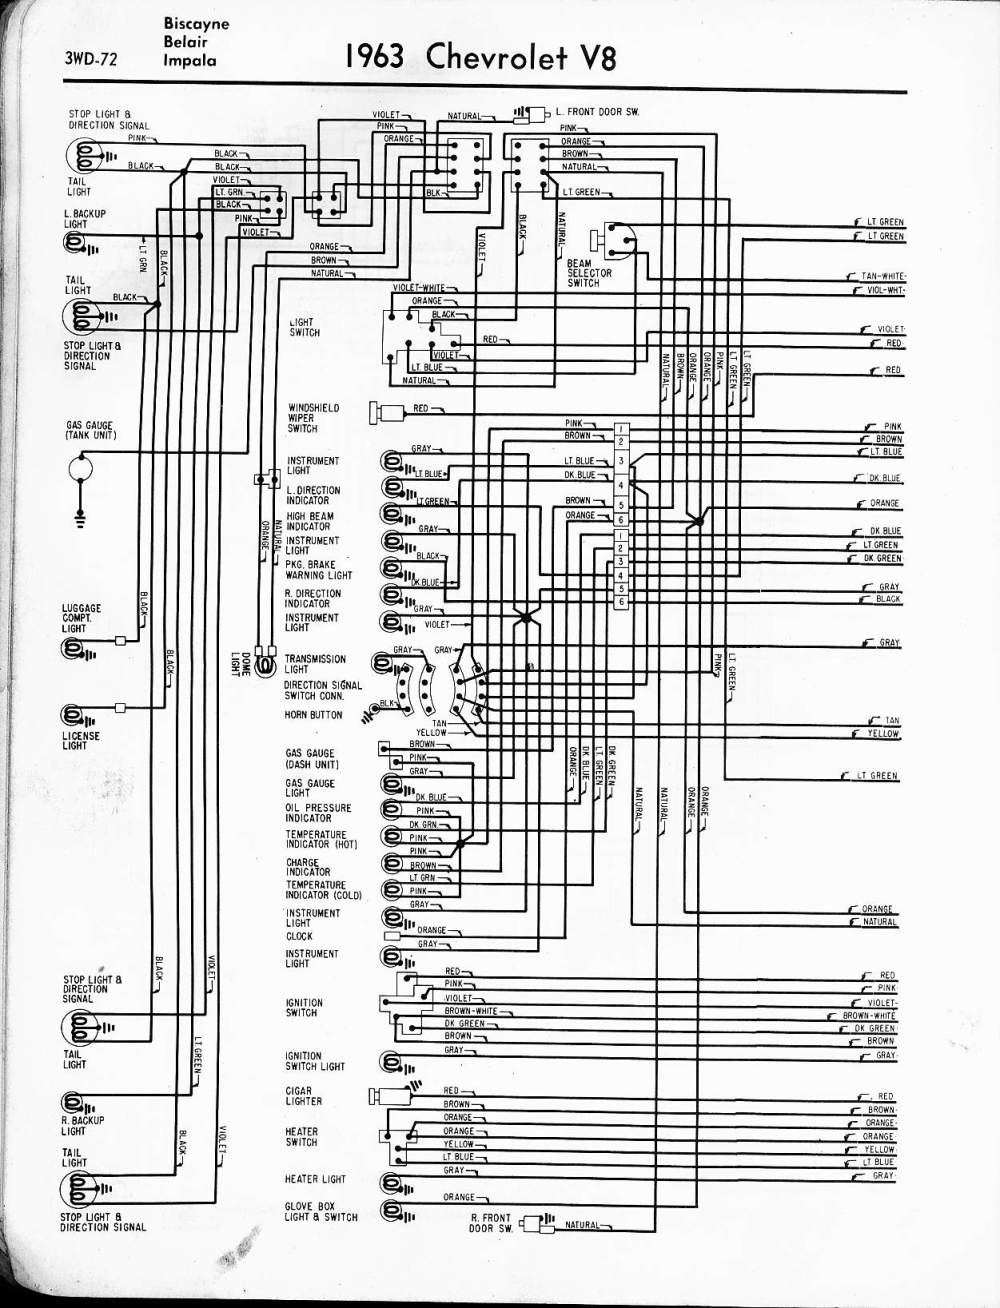 medium resolution of 1962 chevy wiring diagram manual reprint impala ss bel air biscayne